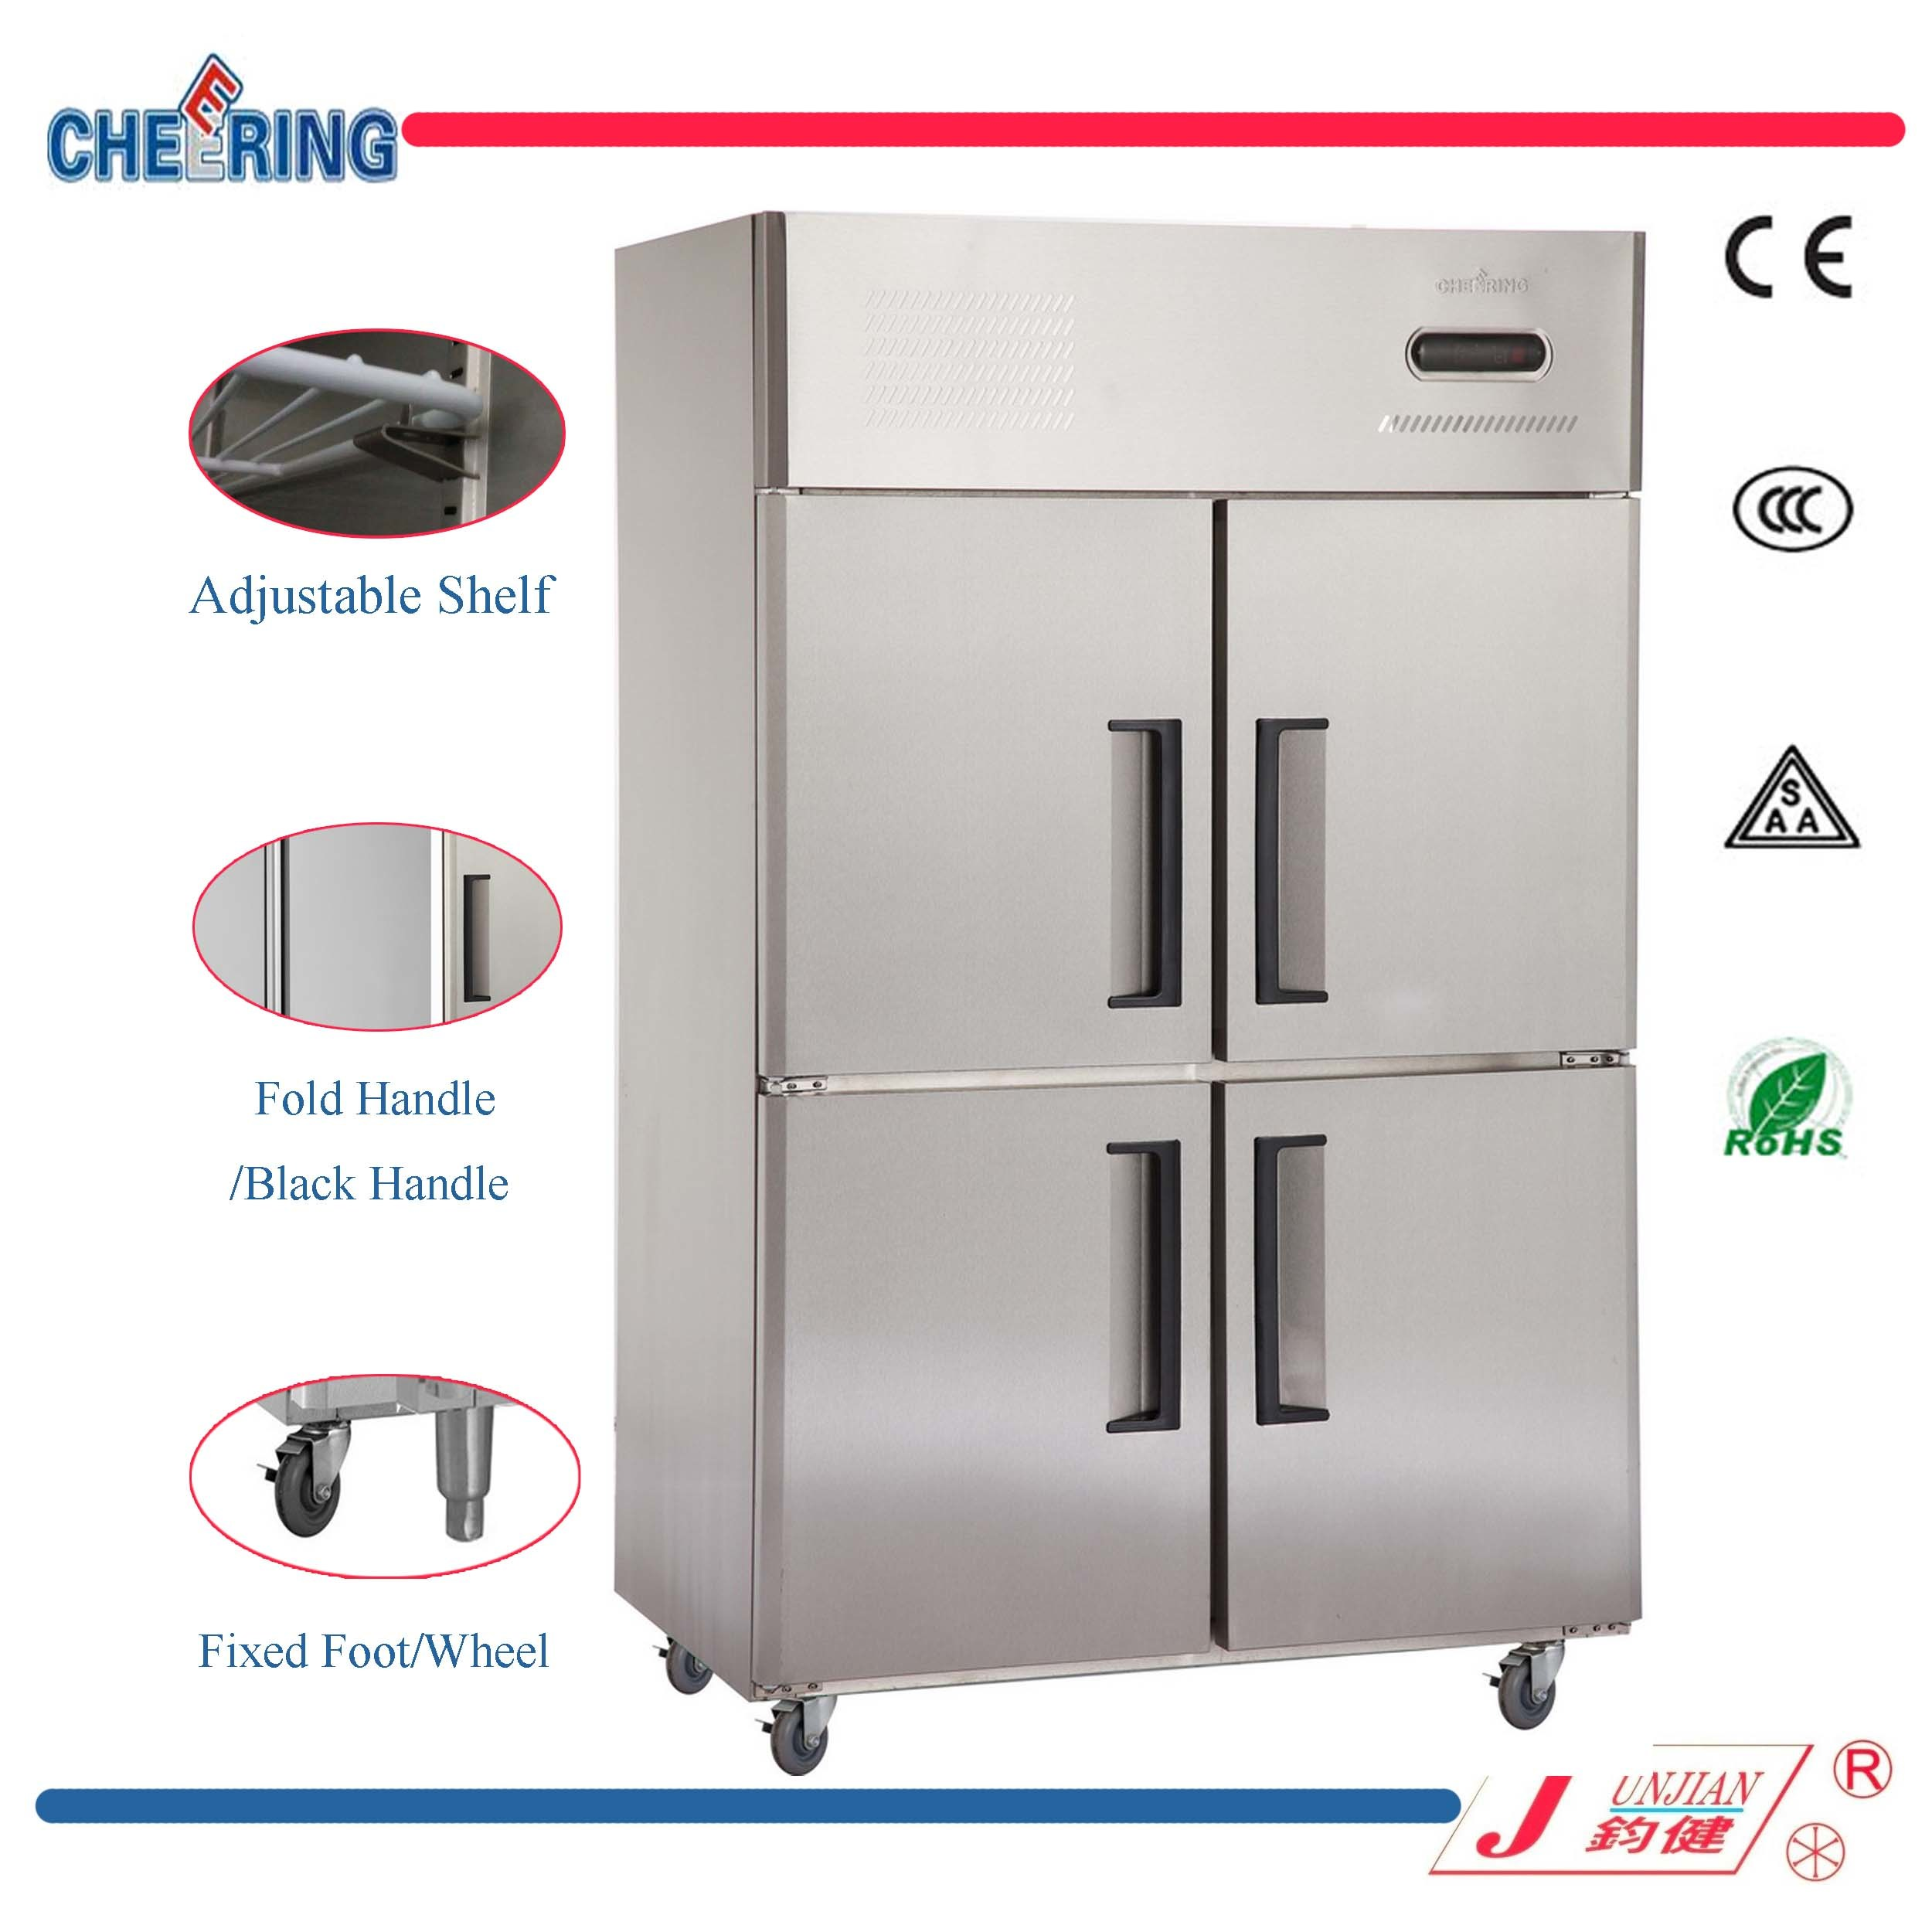 Ce Approved Commercial Stainless Steel Refrigerator